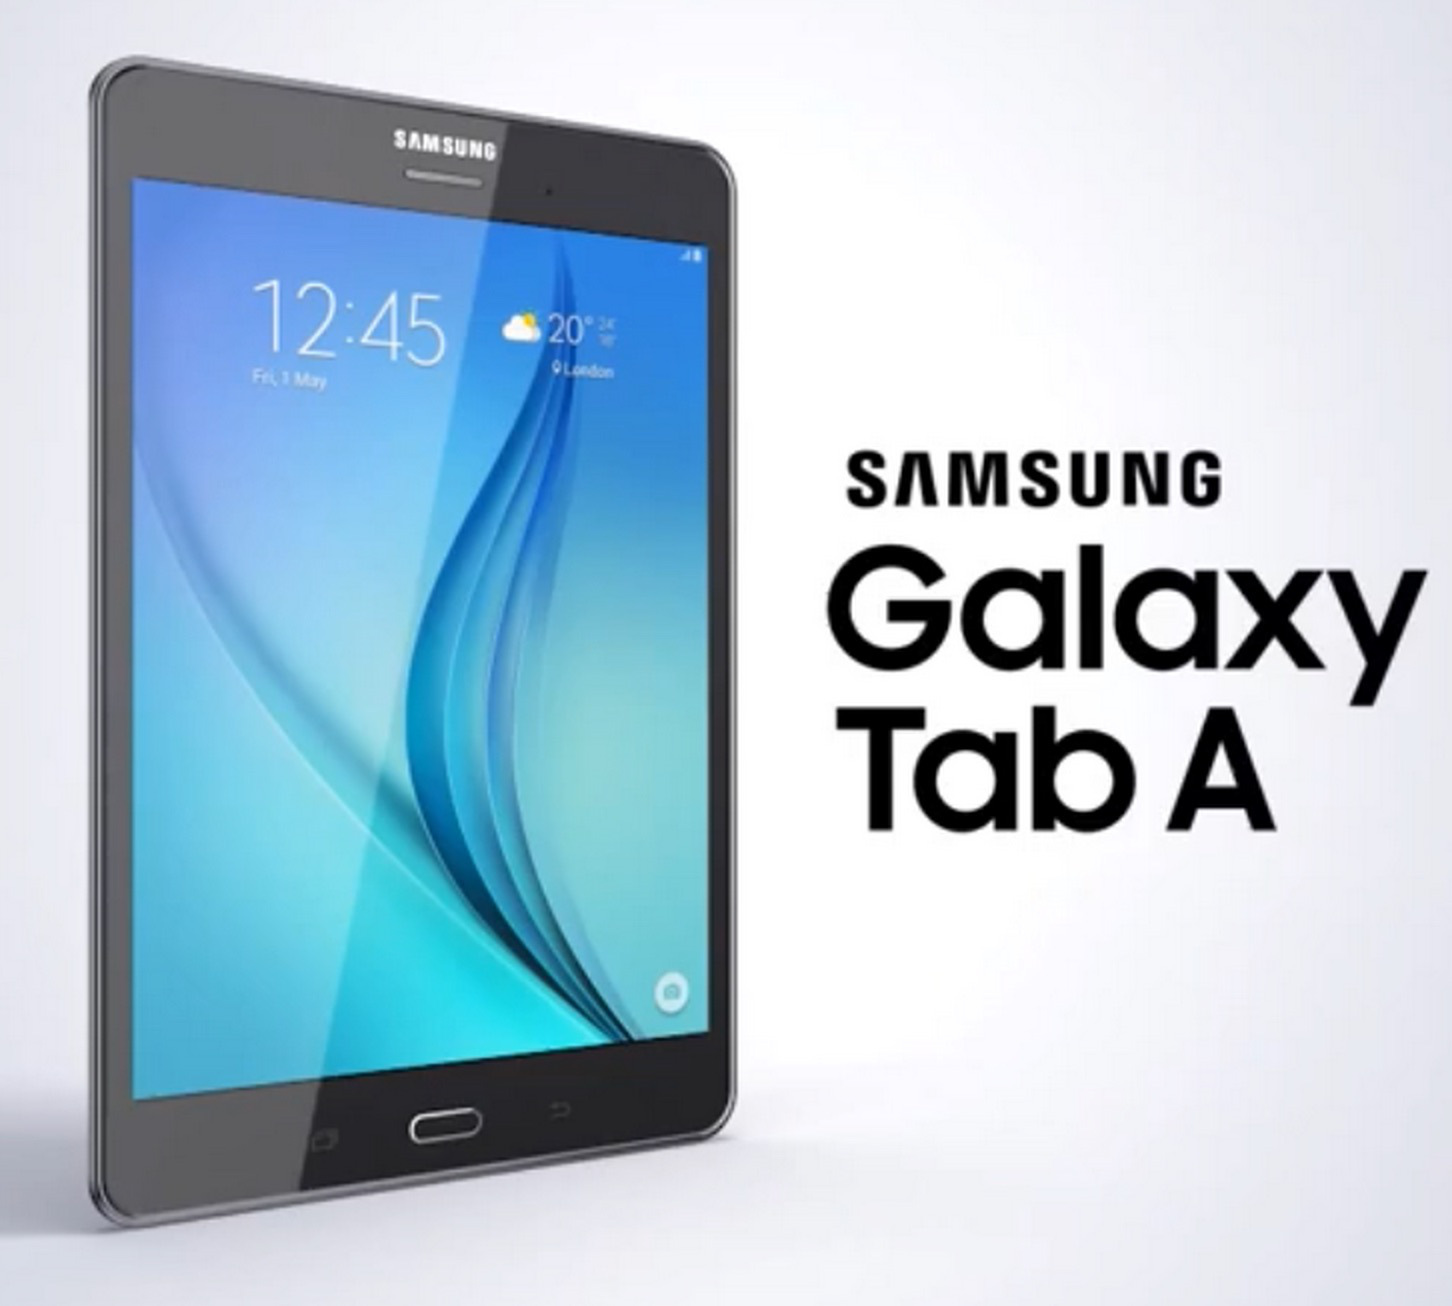 Reviews Of All New Mobiles Samsung Tab A P355 Galaxy And E Launched For Under Rs 21k